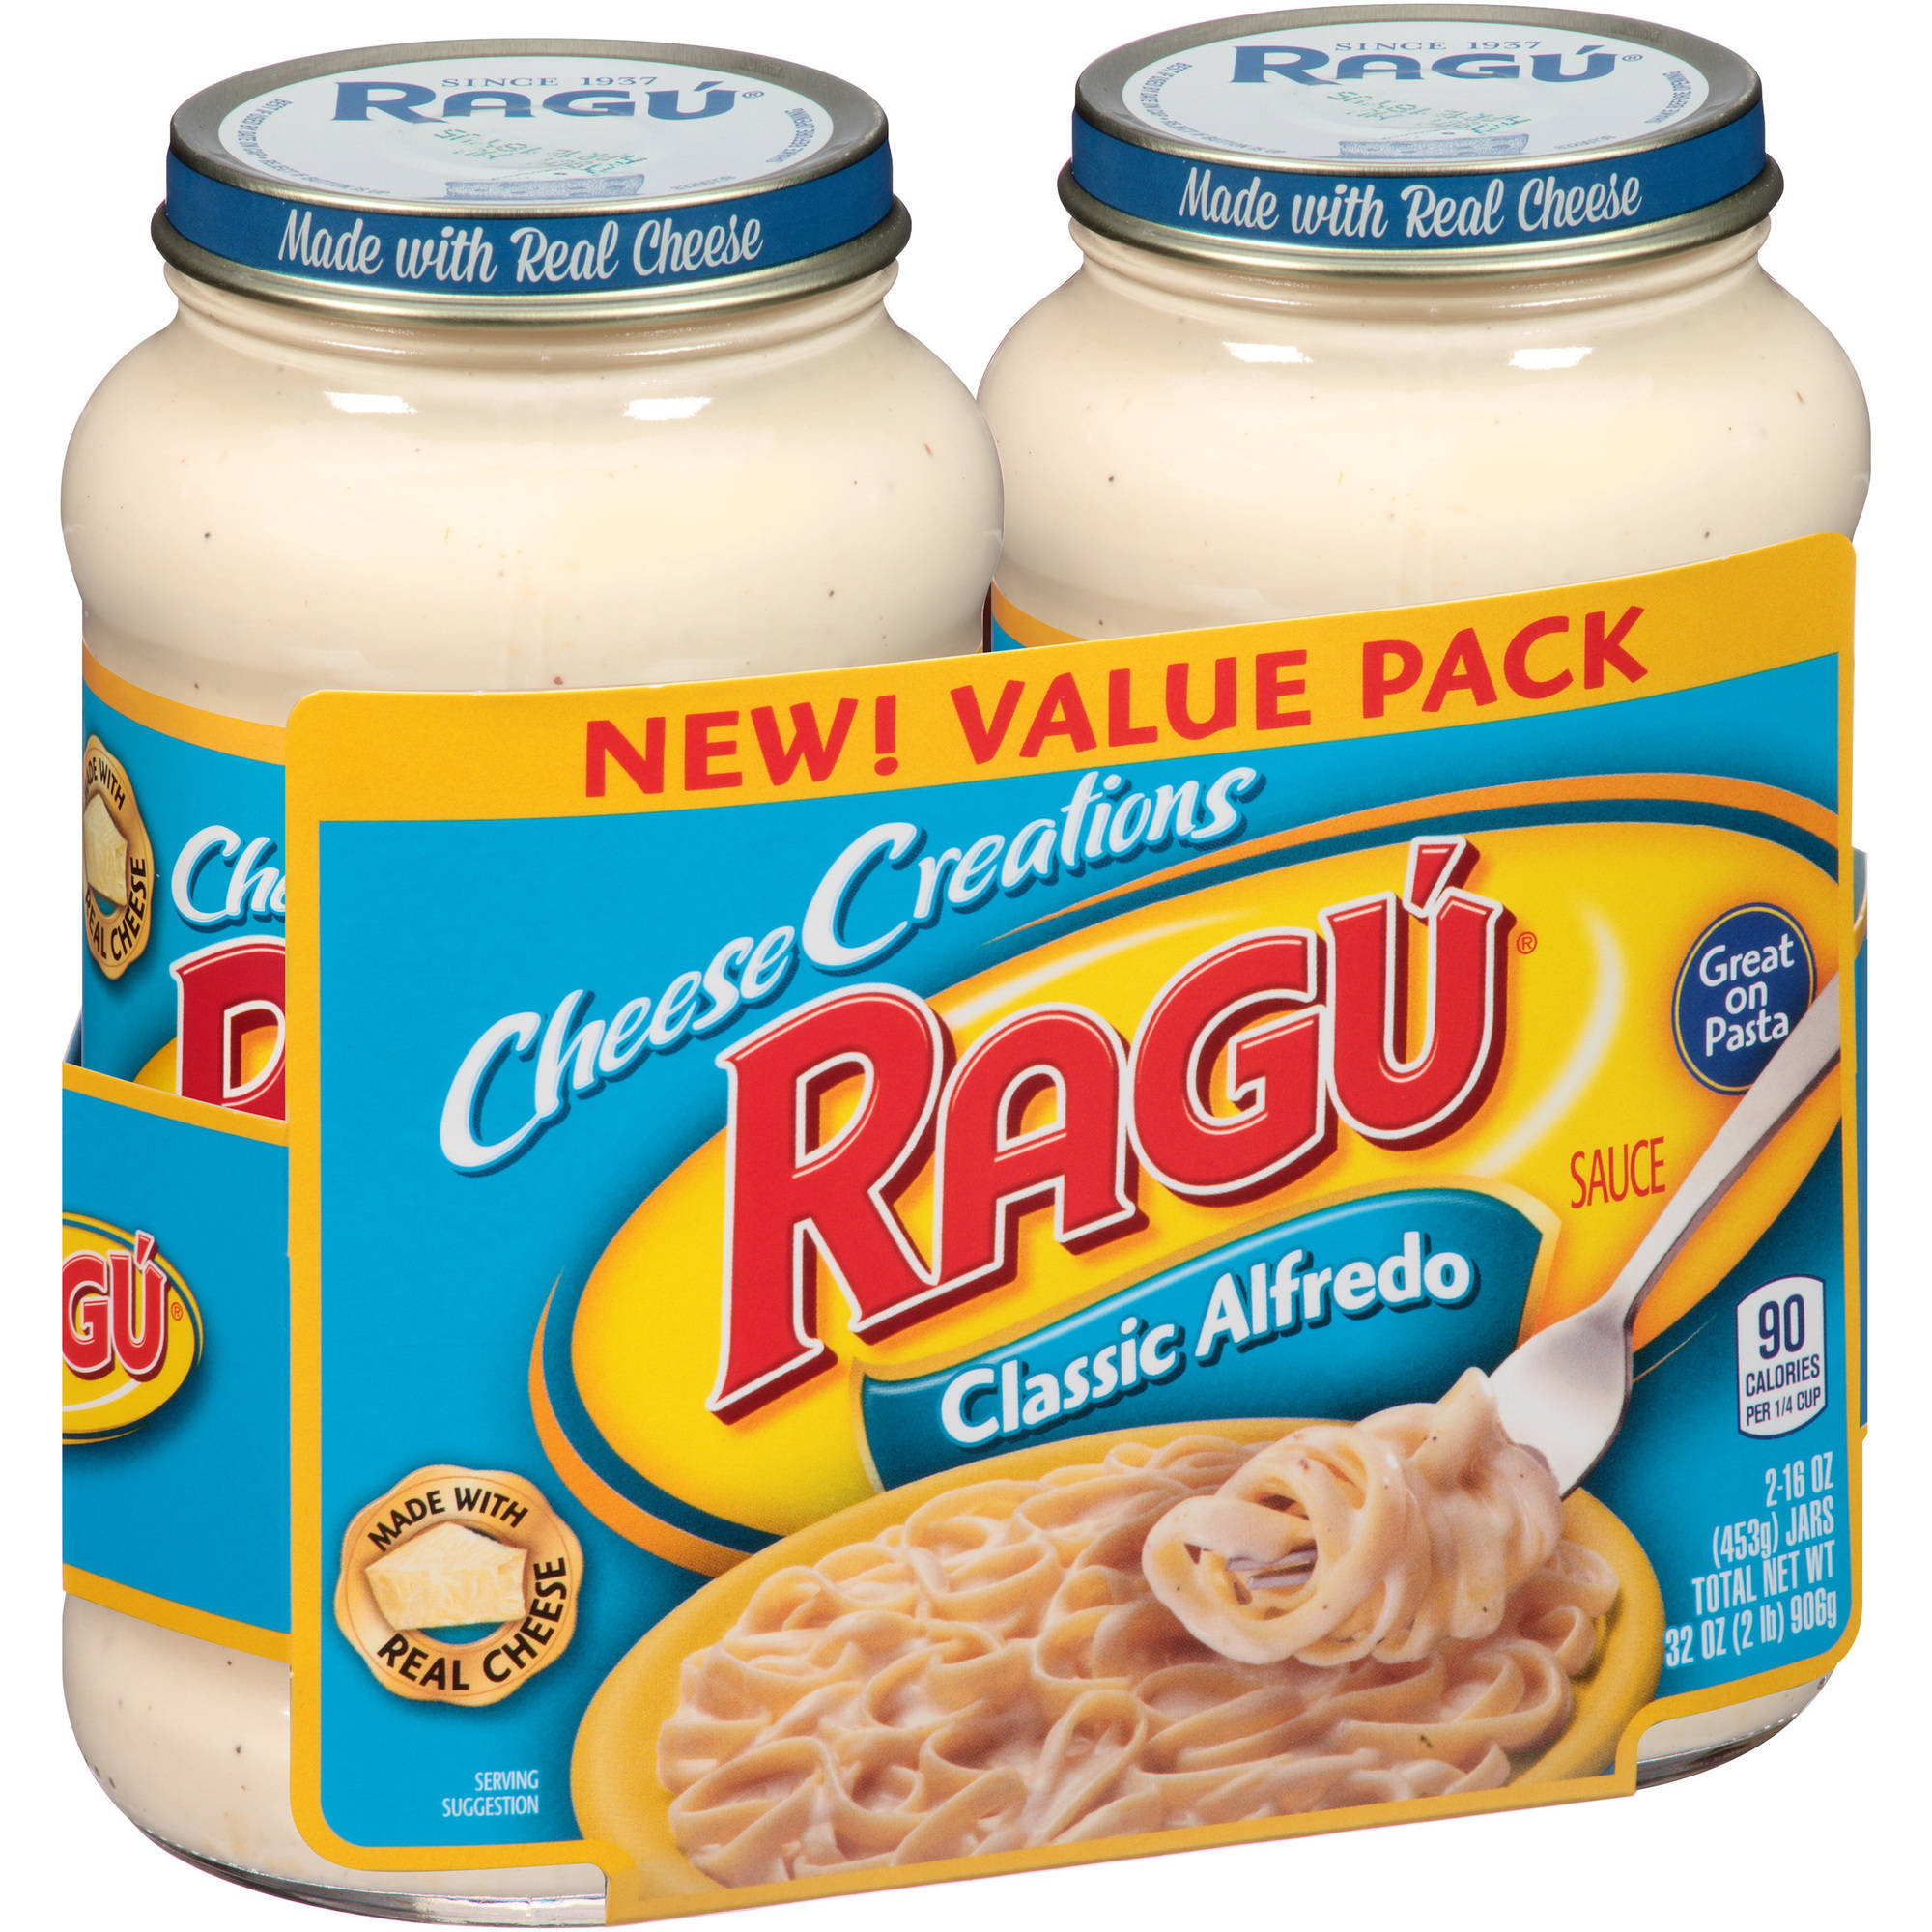 Ragu Cheese Creations Classic Alfredo Sauce, 16 oz, (Pack of 2)